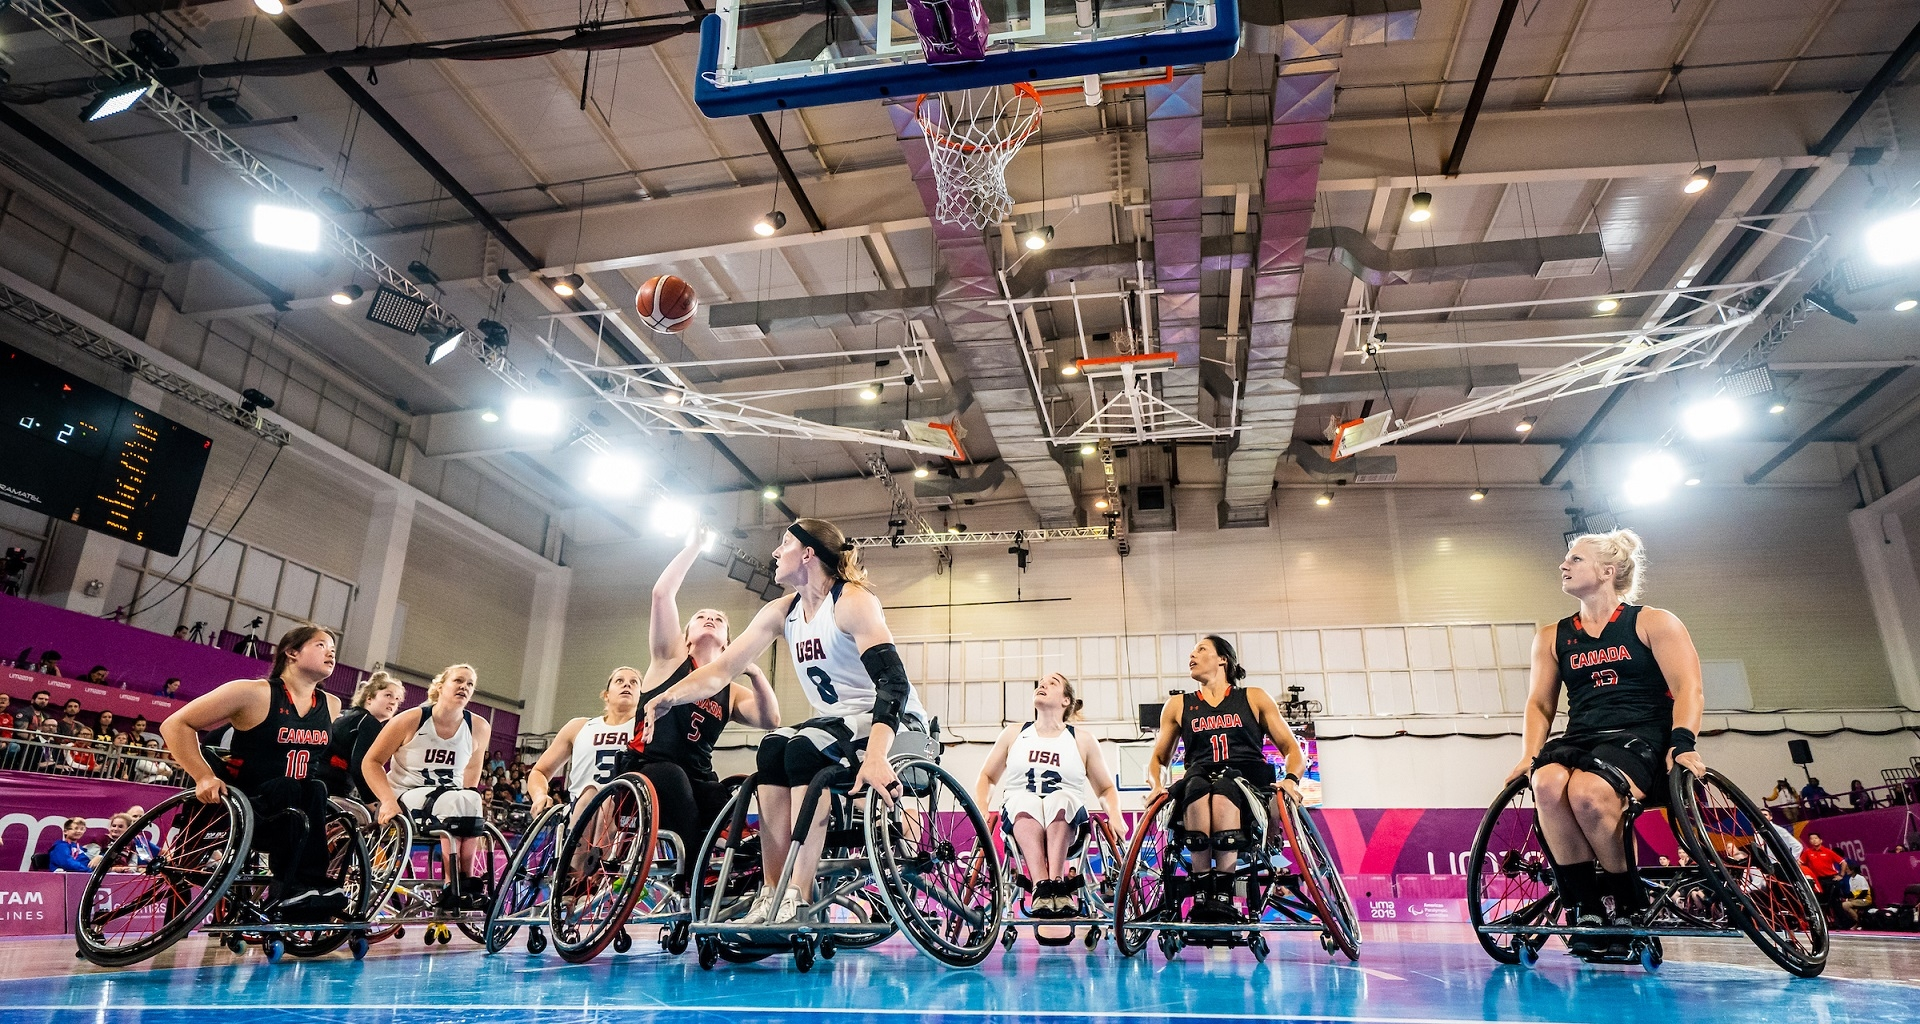 The Canadian women's wheelchair basketball team competes at the Lima 2019 Parapan Am Games.